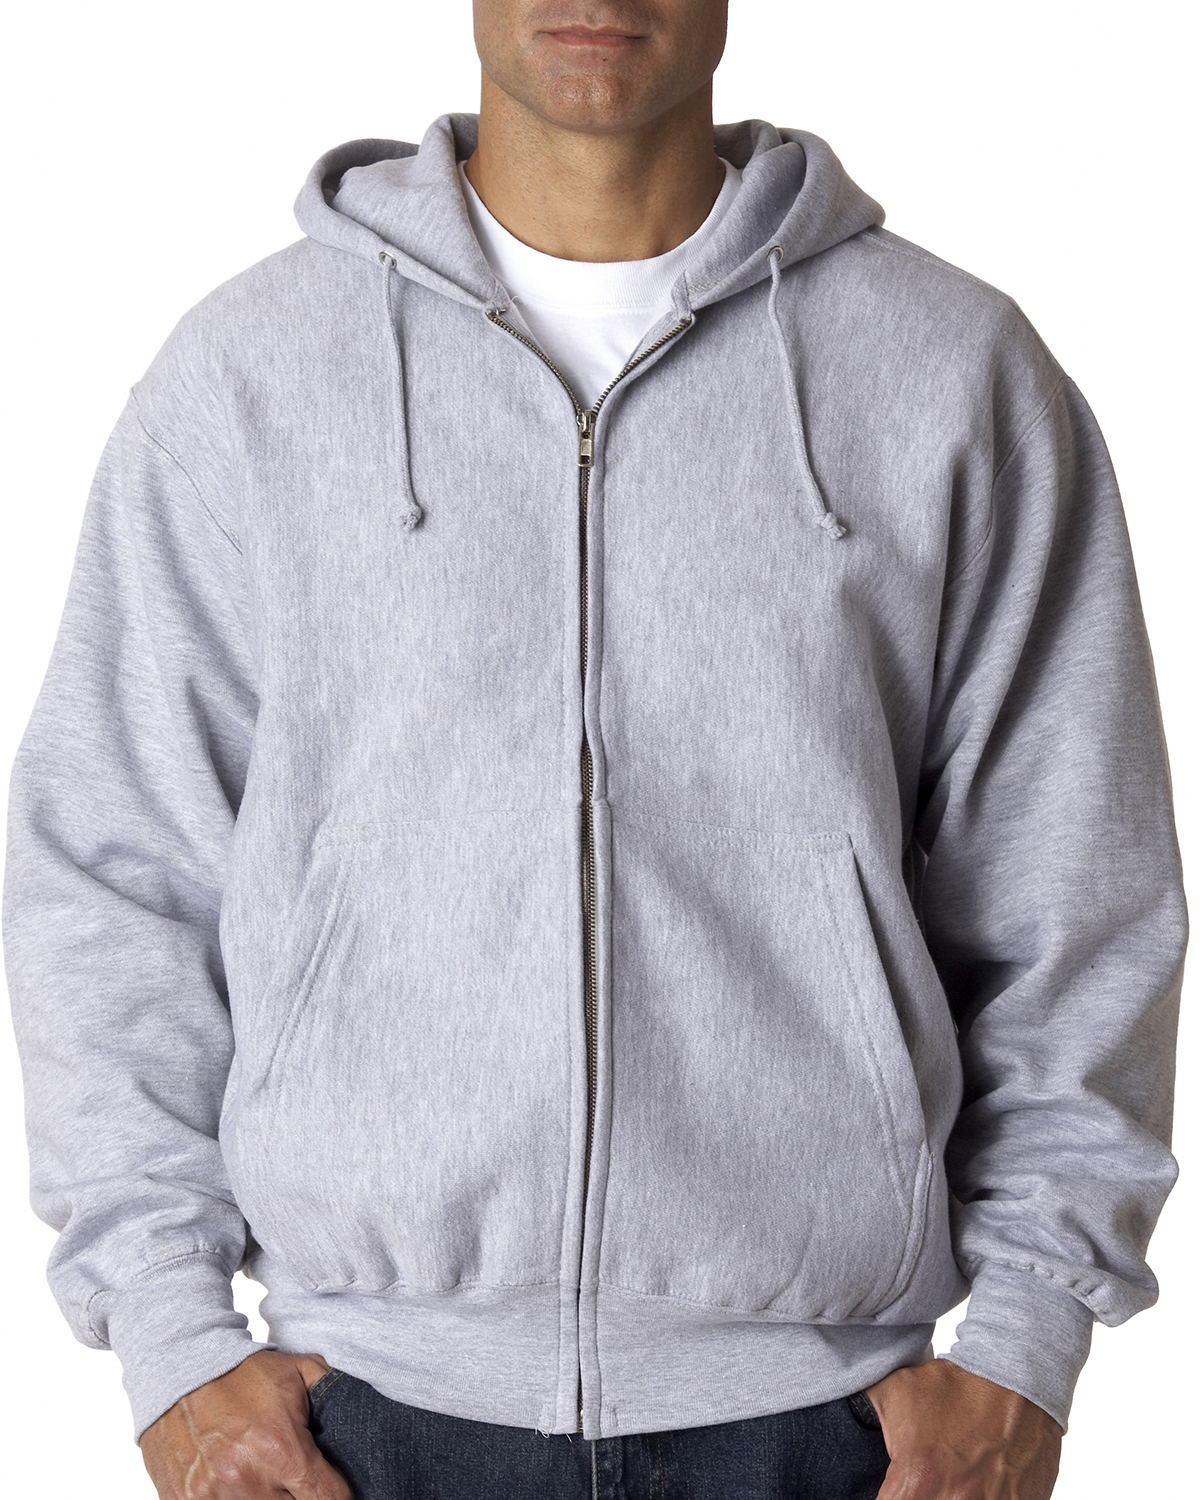 Weatherproof 7711 Cross Weave Full-Zip Hooded Sweatshirt